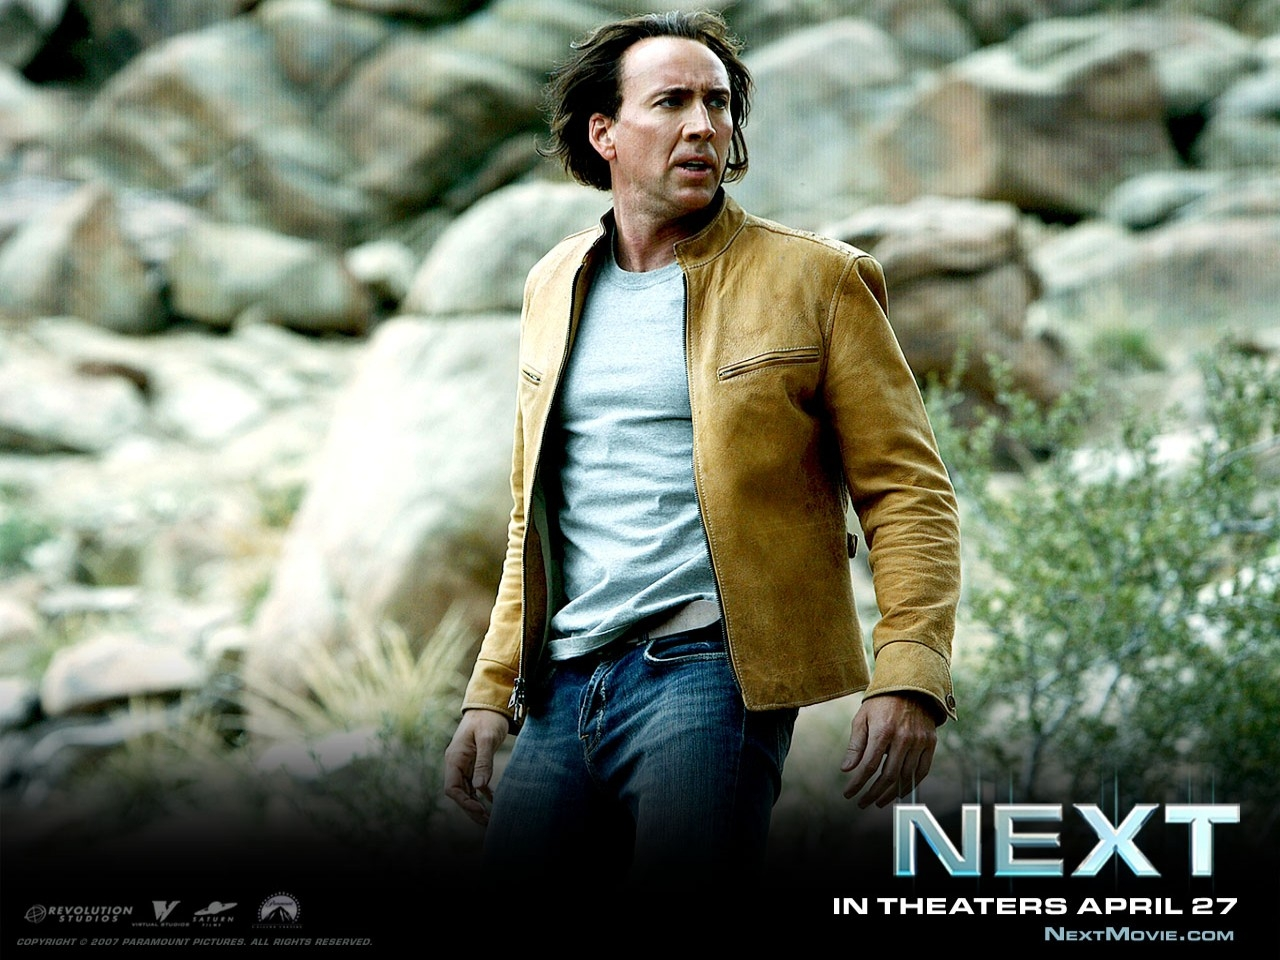 Wallpaper di Nicolas Cage nel film Next